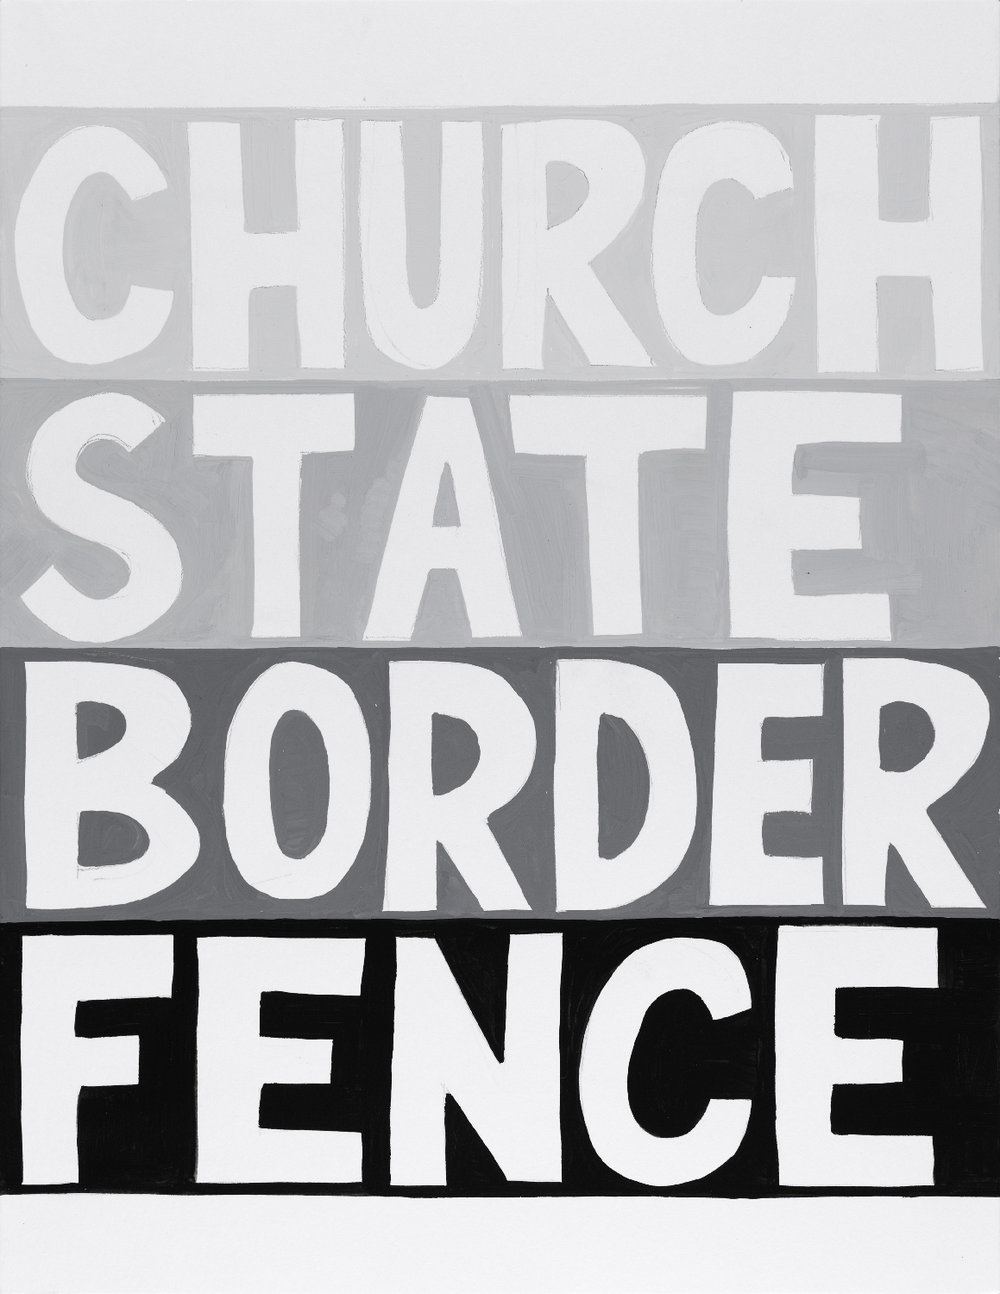 churchstateborderfence.jpg